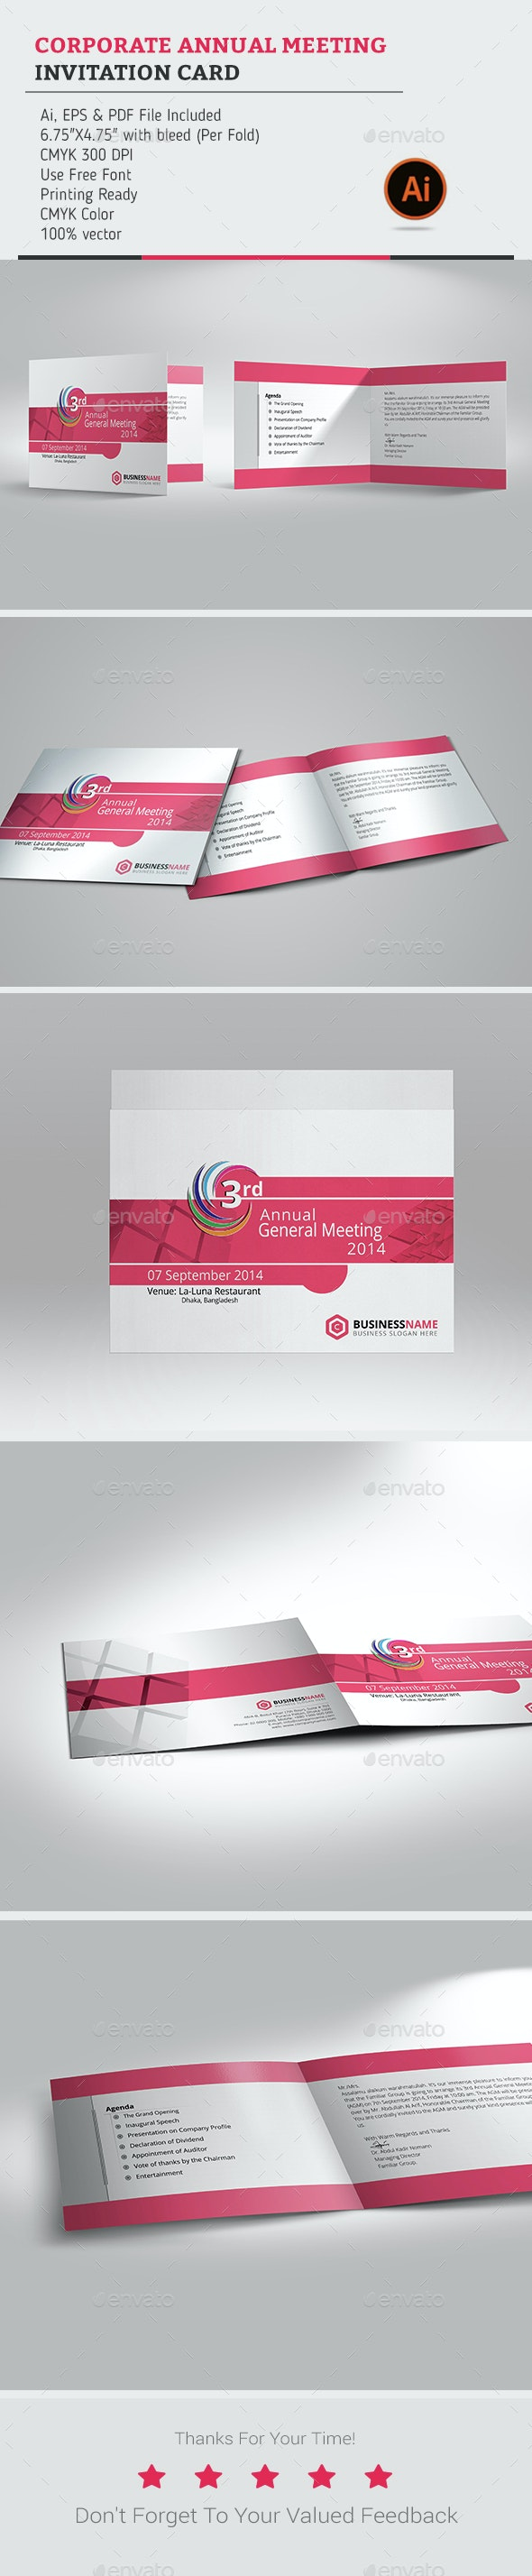 Corporate Annual Meeting invitation Card - Cards & Invites Print Templates